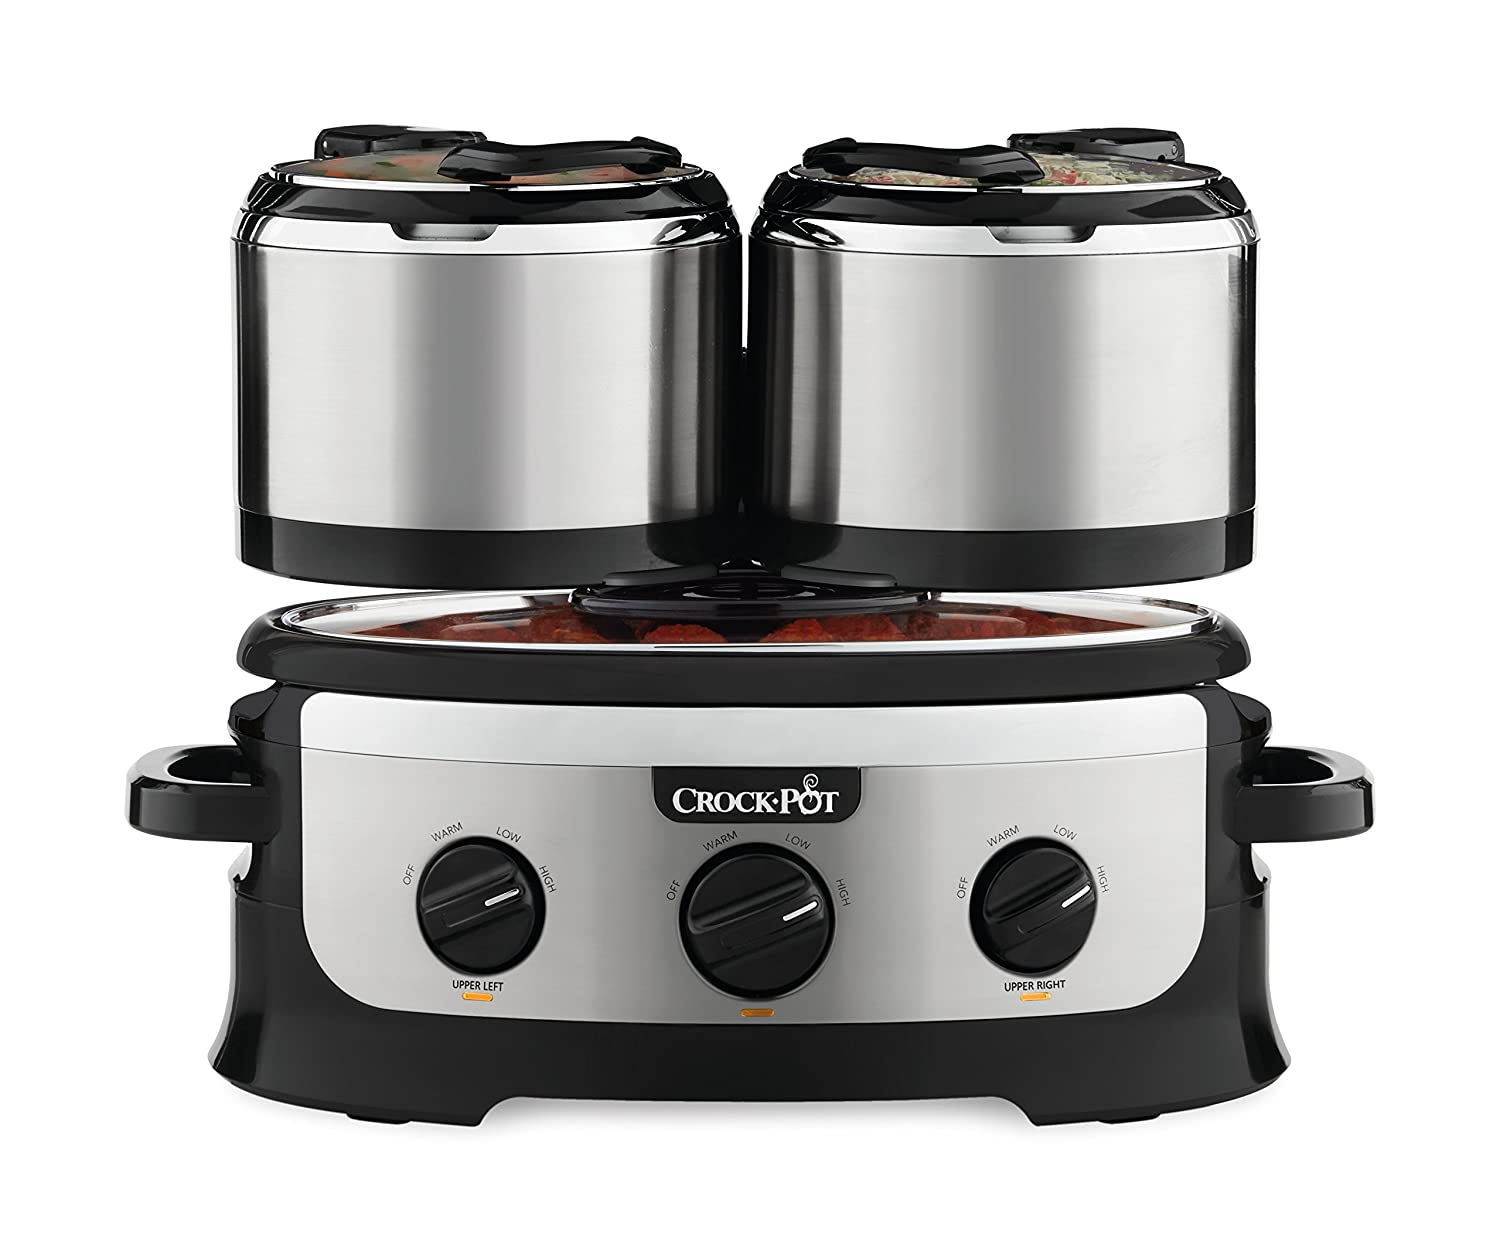 Crock-pot SCCPTOWER-B Swing and Serve Slow Cooker, Black